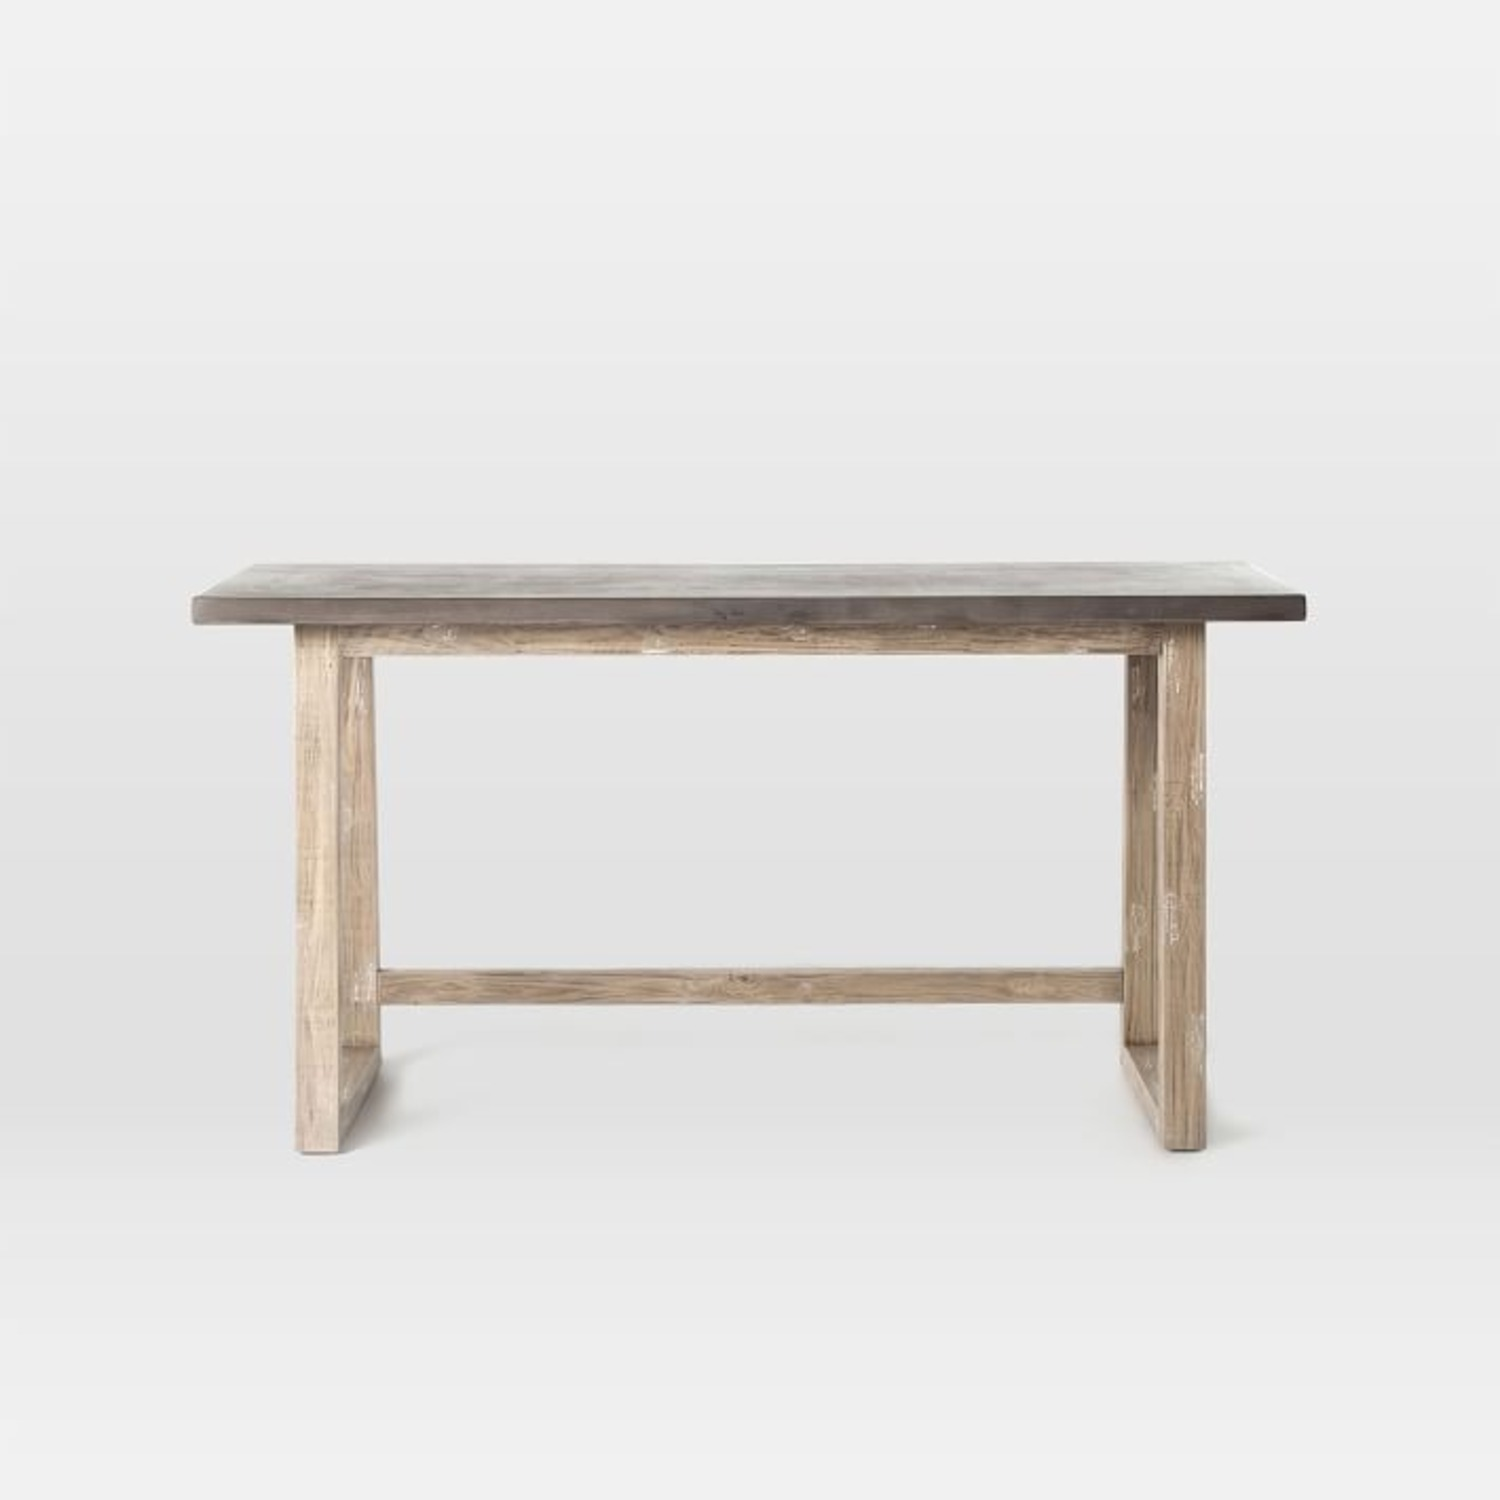 West Elm Concrete-Topped Mixed Wood Desk - image-2